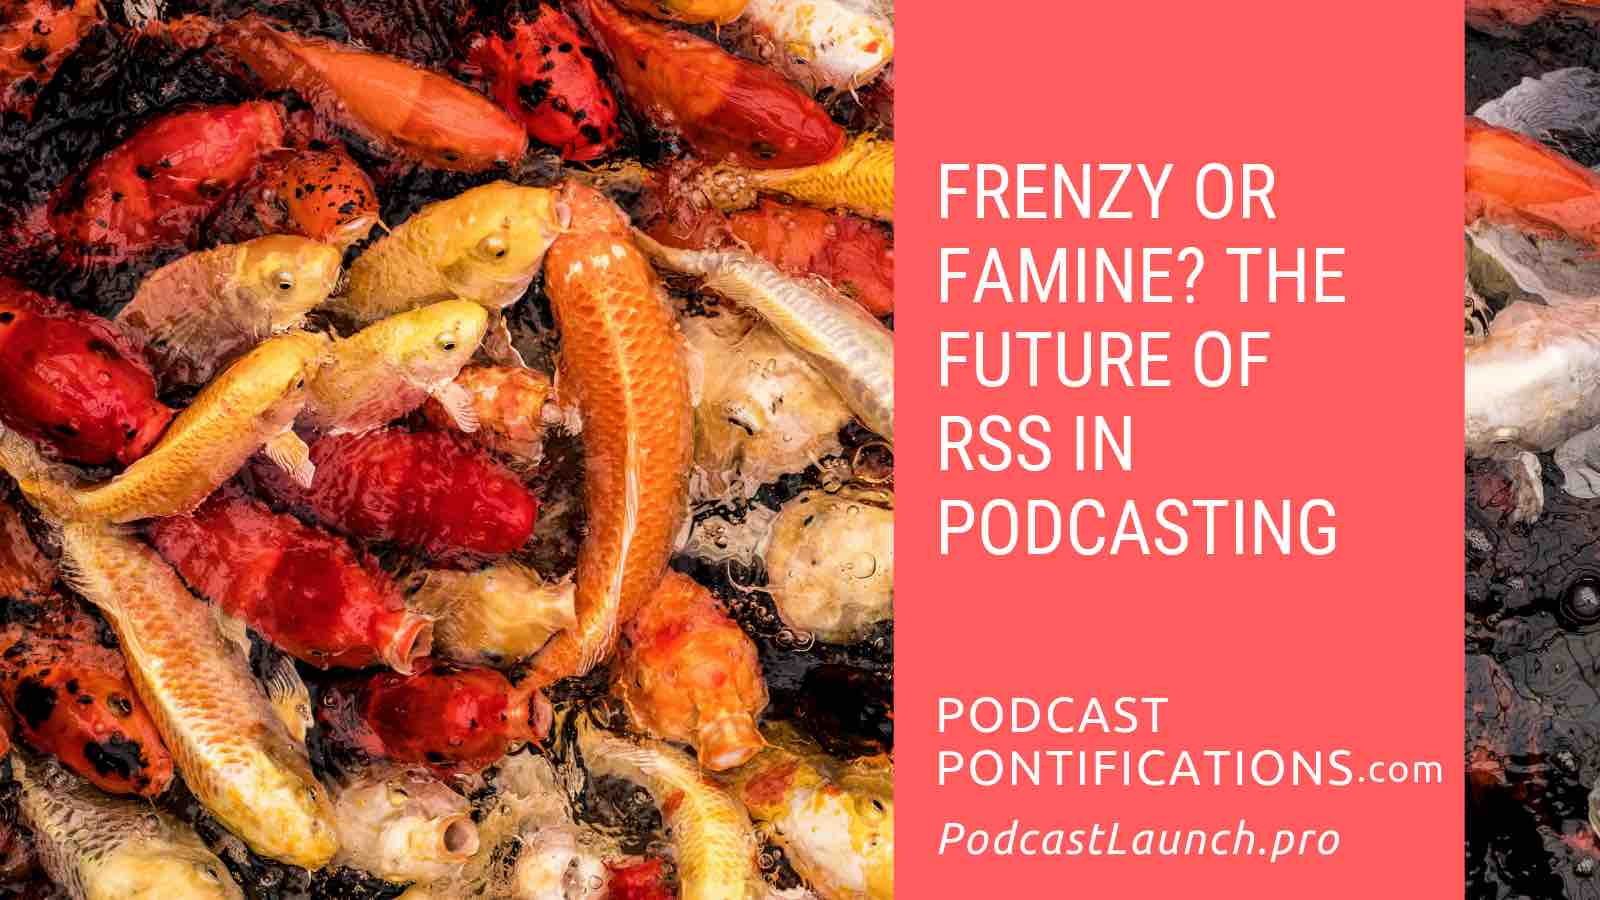 Frenzy or Famine: The Future of RSS in Podcasting